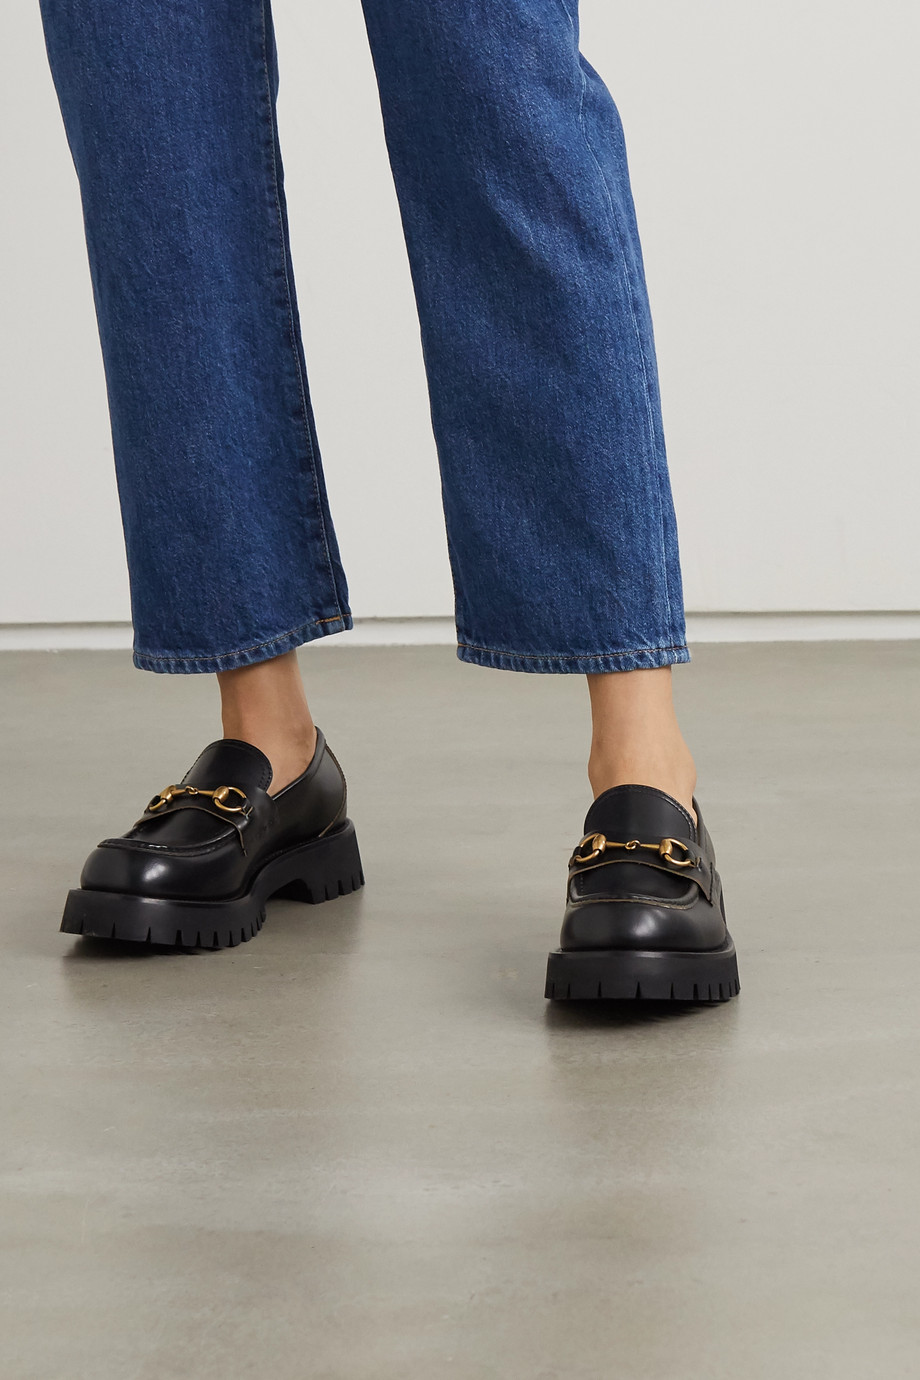 GUCCI Horsebit-detailed leather platform loafers